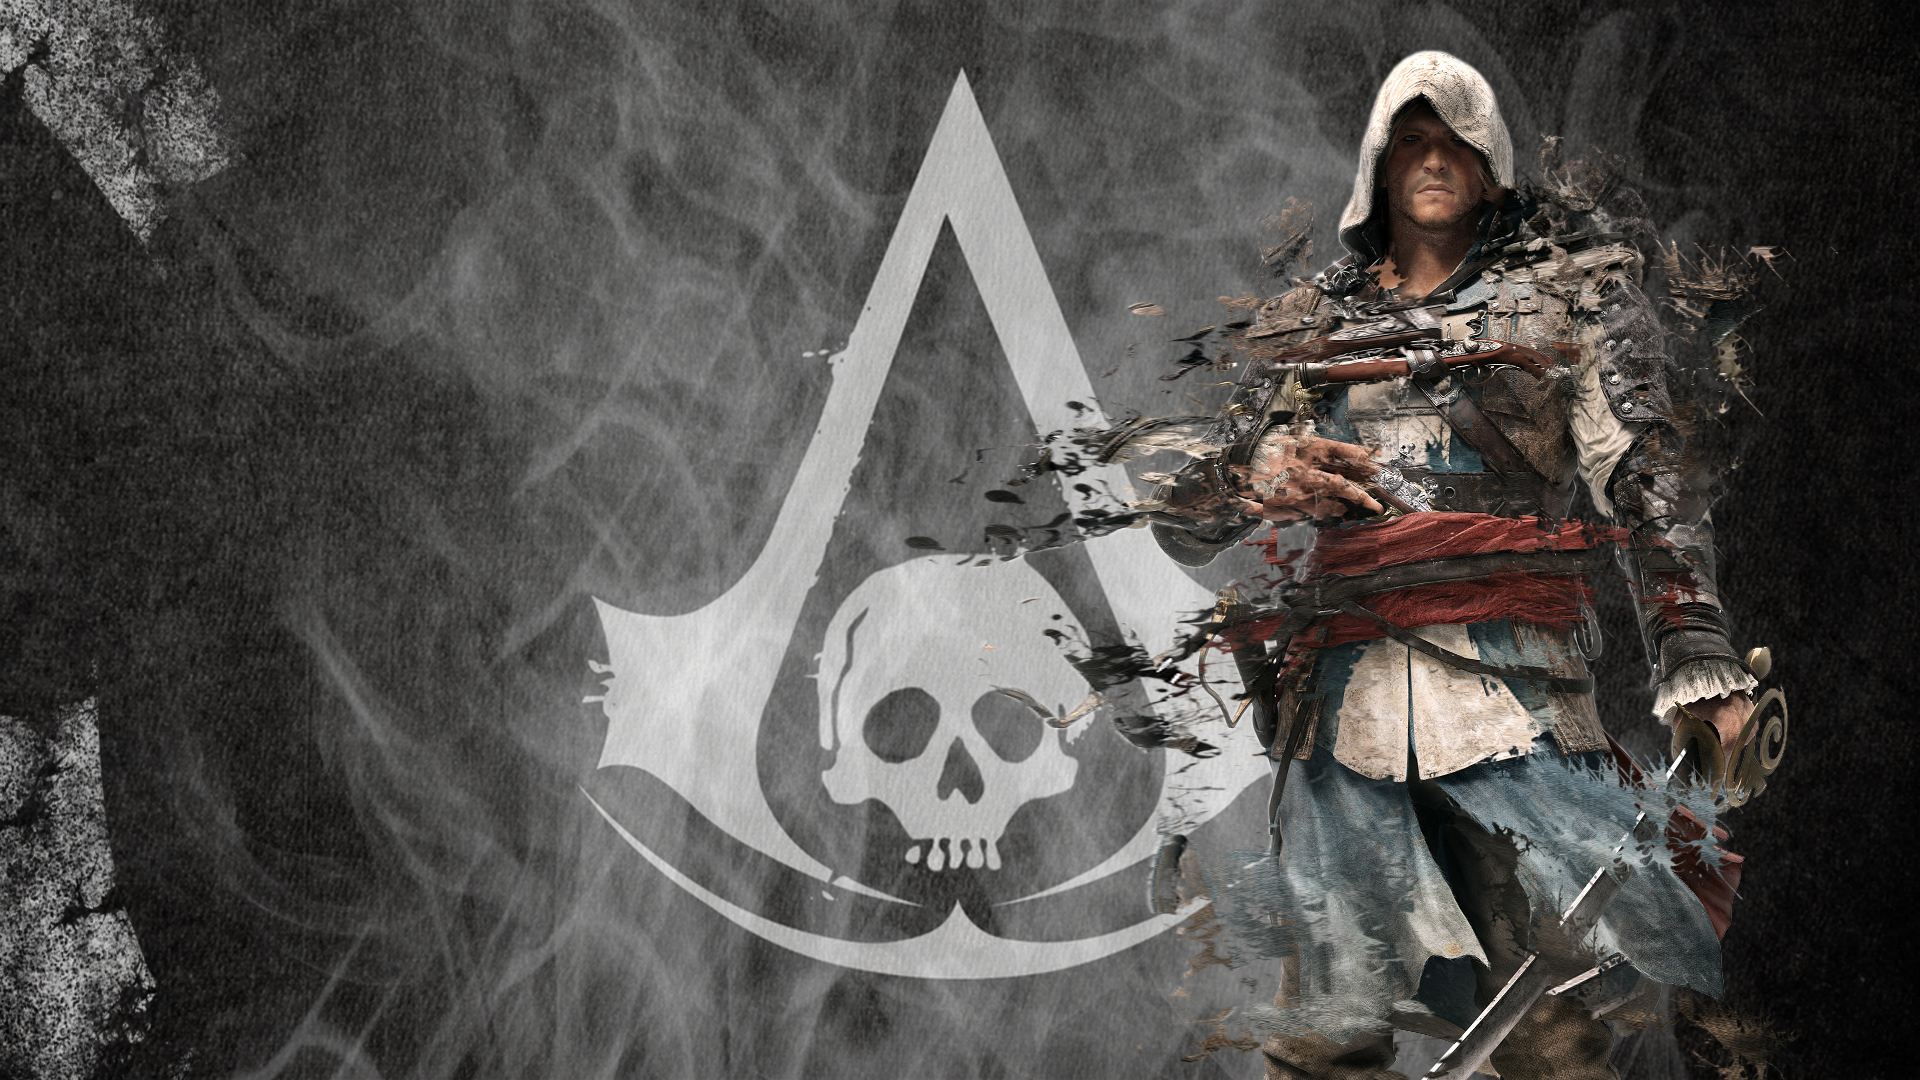 Black Flag Assasins Creed Wallpaper HD